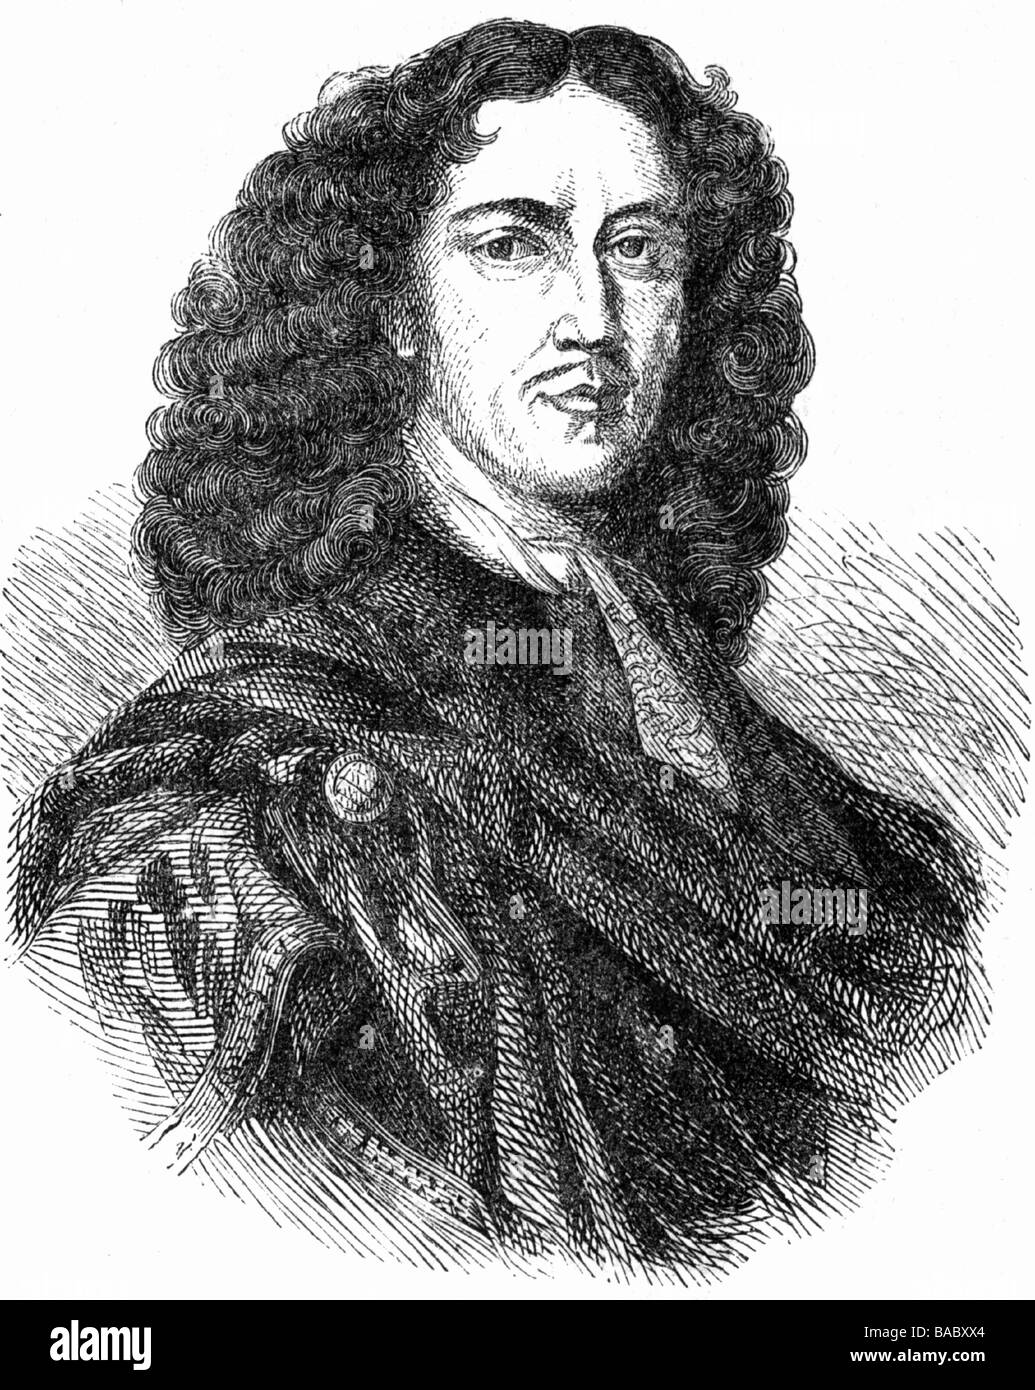 Quirinus Kuhlmann, 25.2.1651 - 4.10.1689, German author / writer, portrait, wood engraving, 19th century, Lutheran, lyrical poet Stock Photo